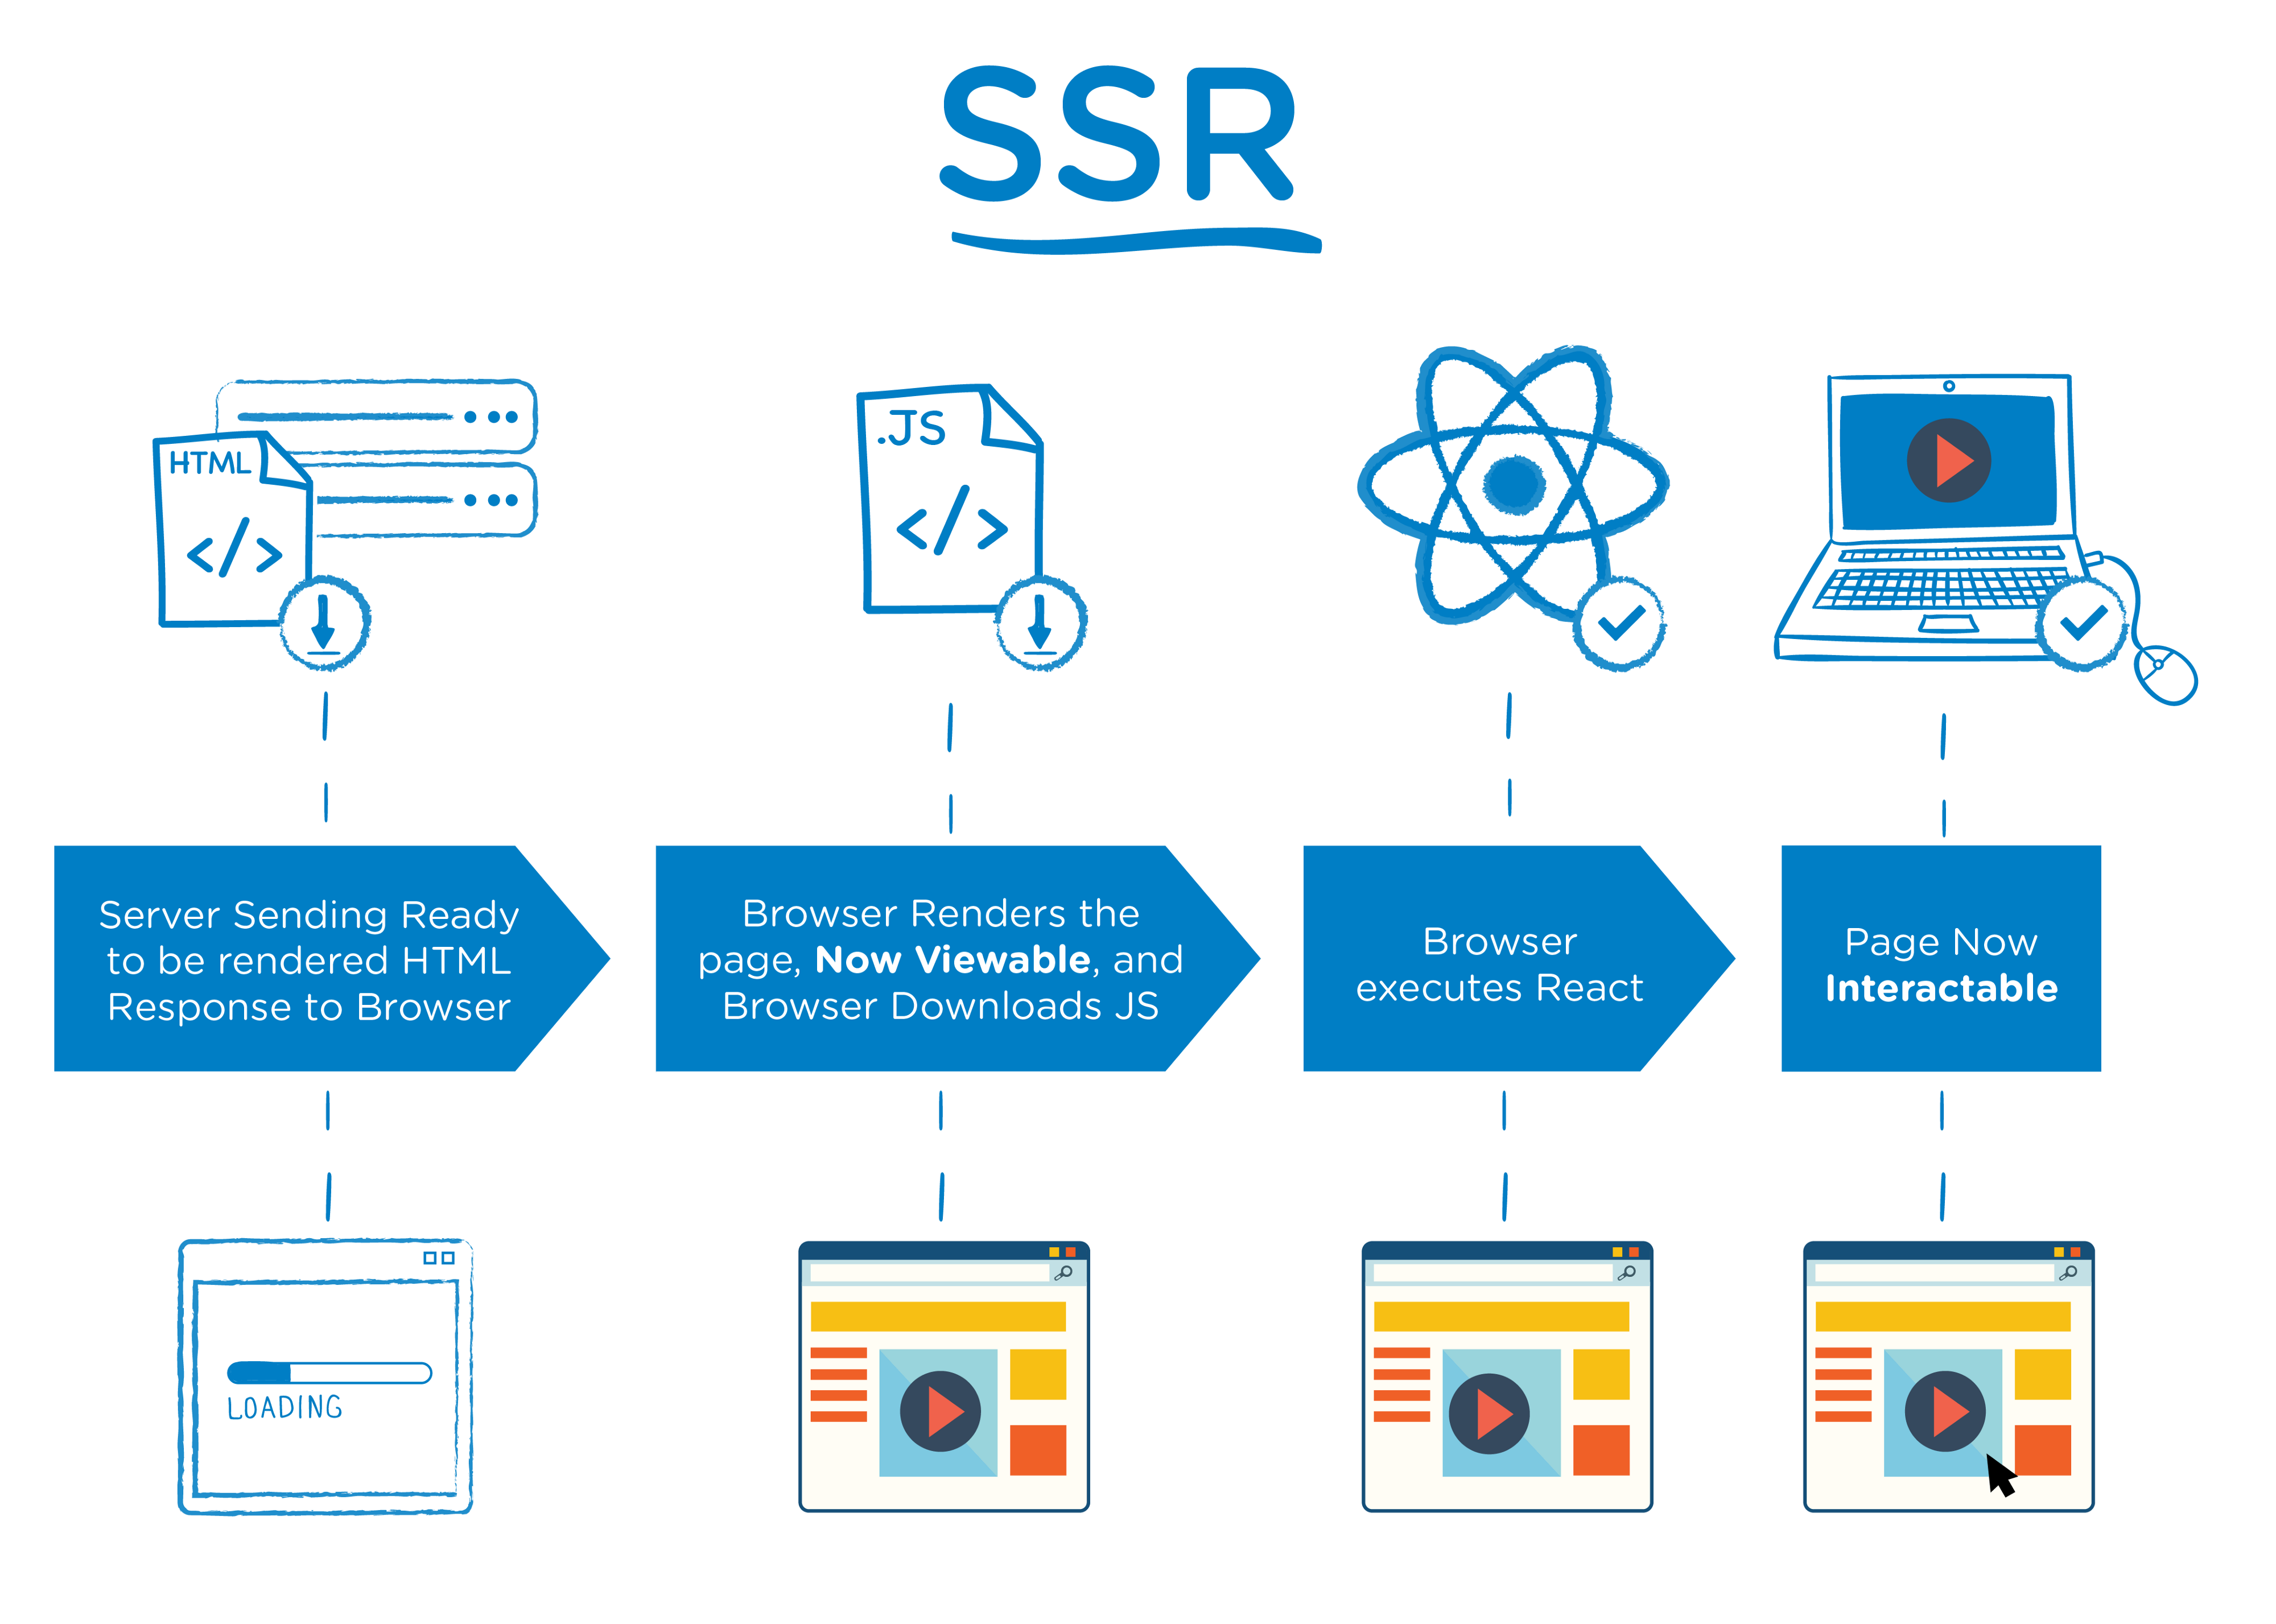 This image shows a diagram of server-side rendering and the framework to operate it.